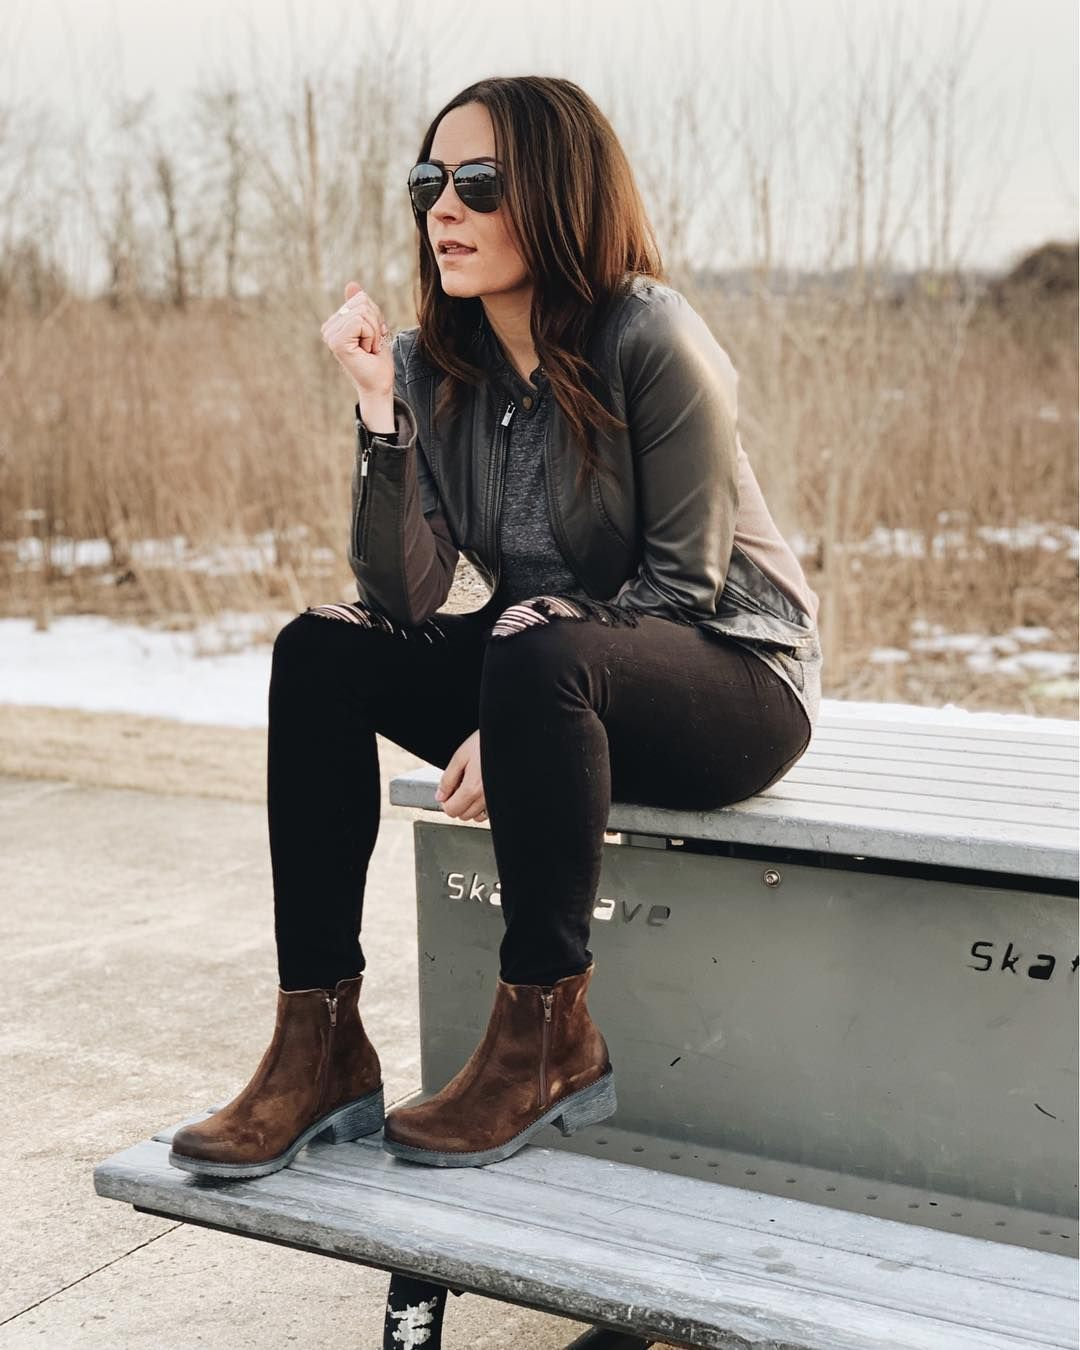 Faux leather jacket, black jeans, and brown boots